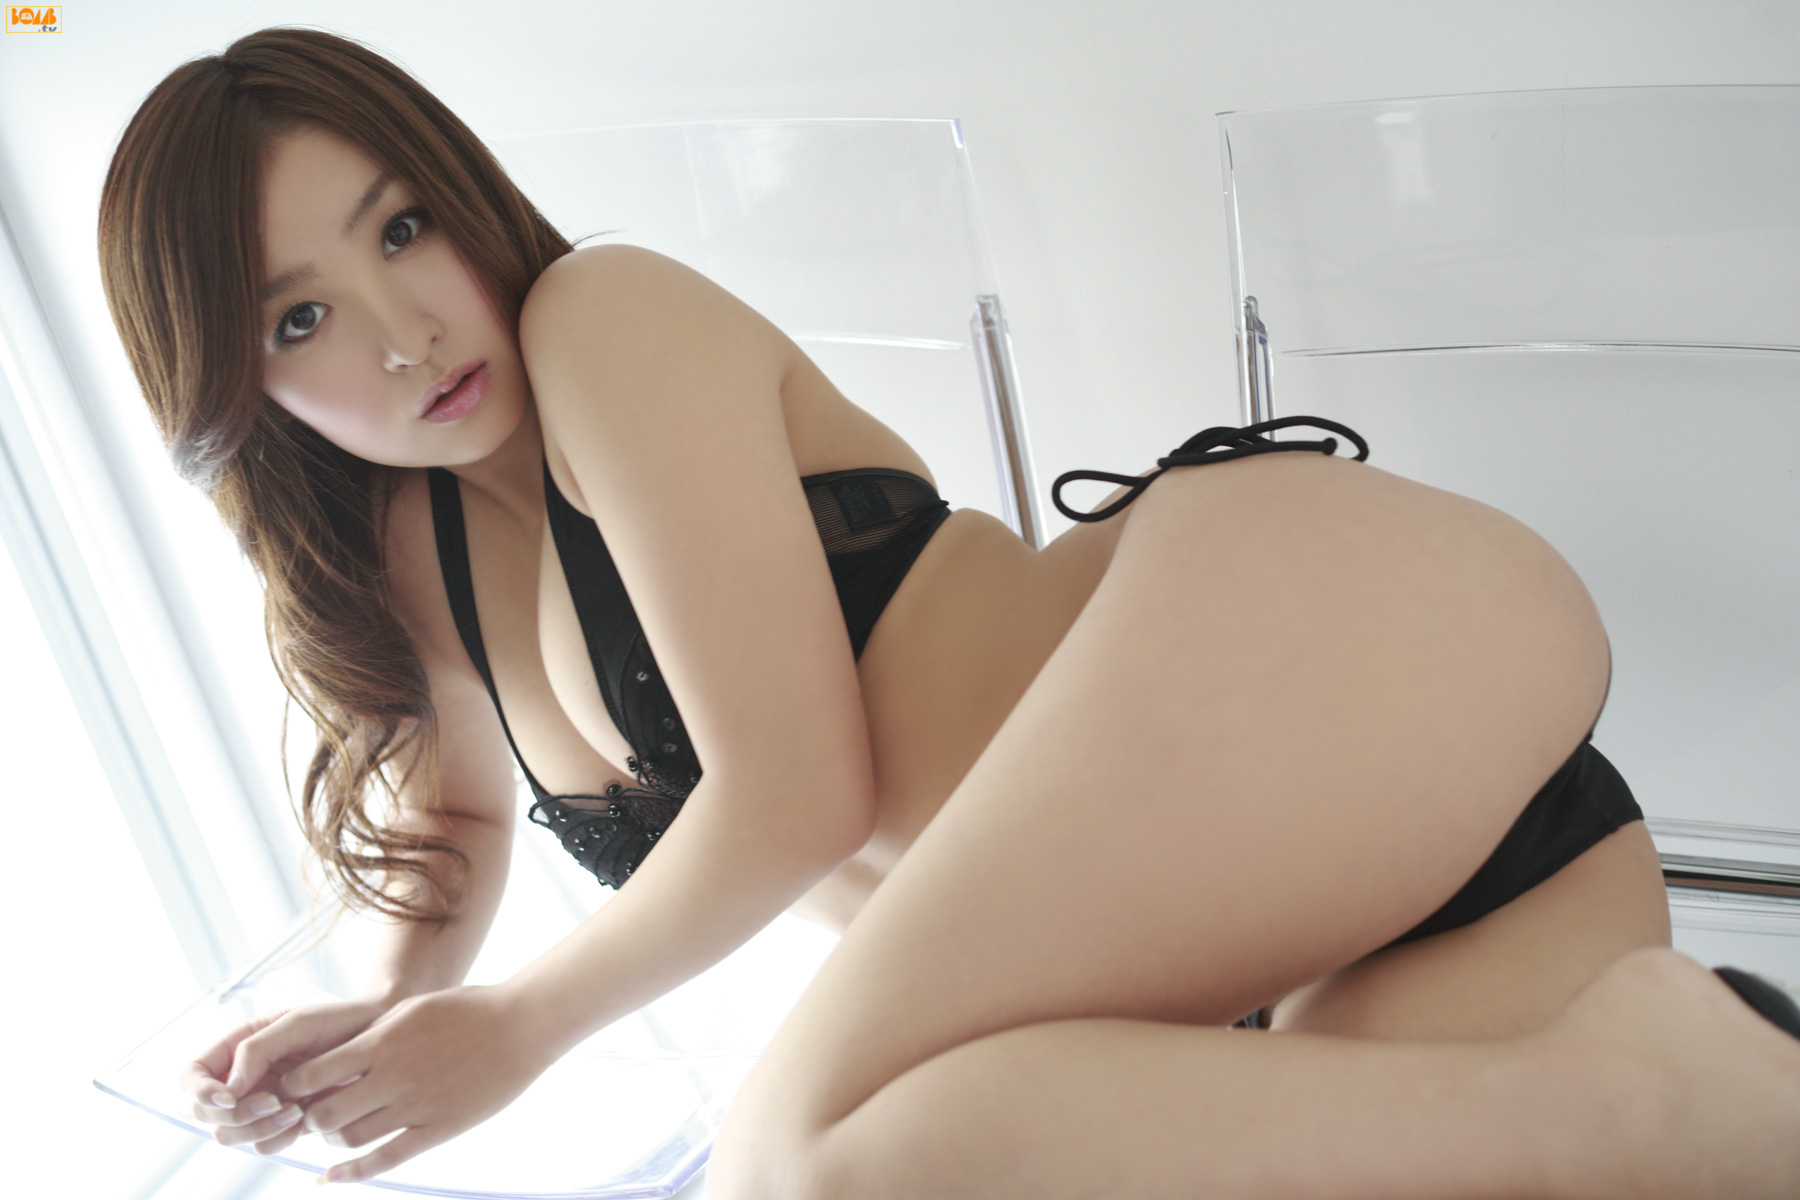 [FSo] Aya Kiguchi - Bomb.tv 木口亜矢 [2007.07][17.95 MB]Real Street Angels